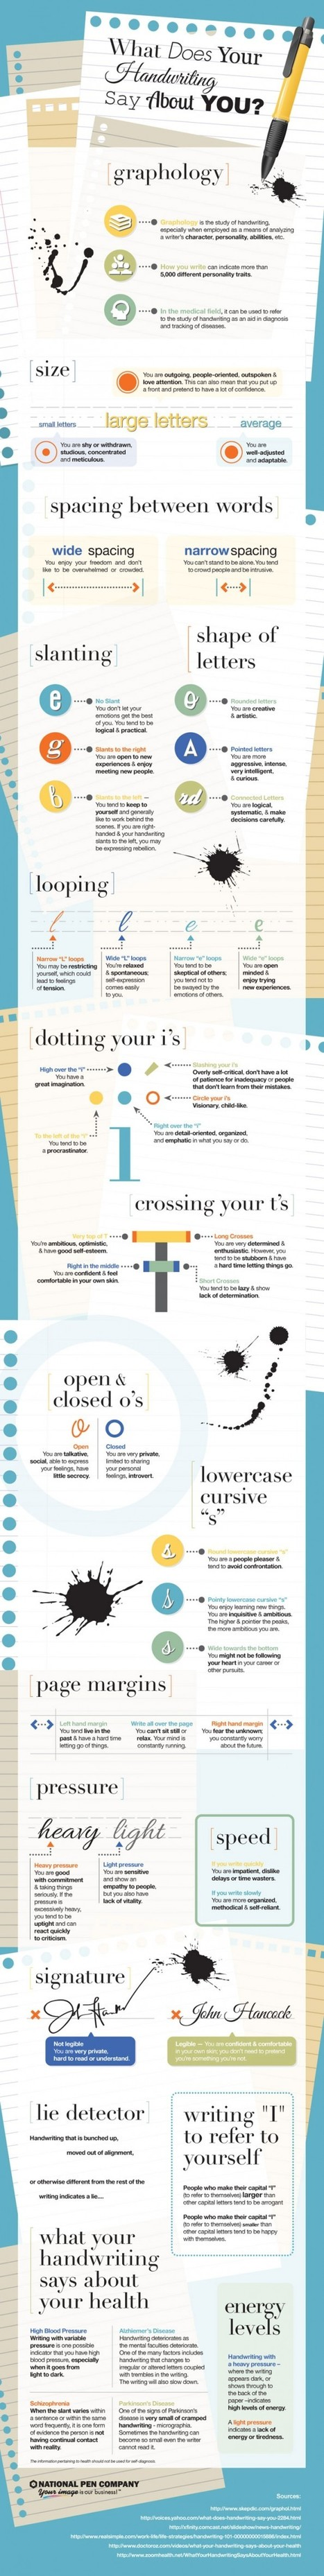 What Does Your Handwriting Say About You? - An Infograhic | Somewhat Quirky! | Scoop.it